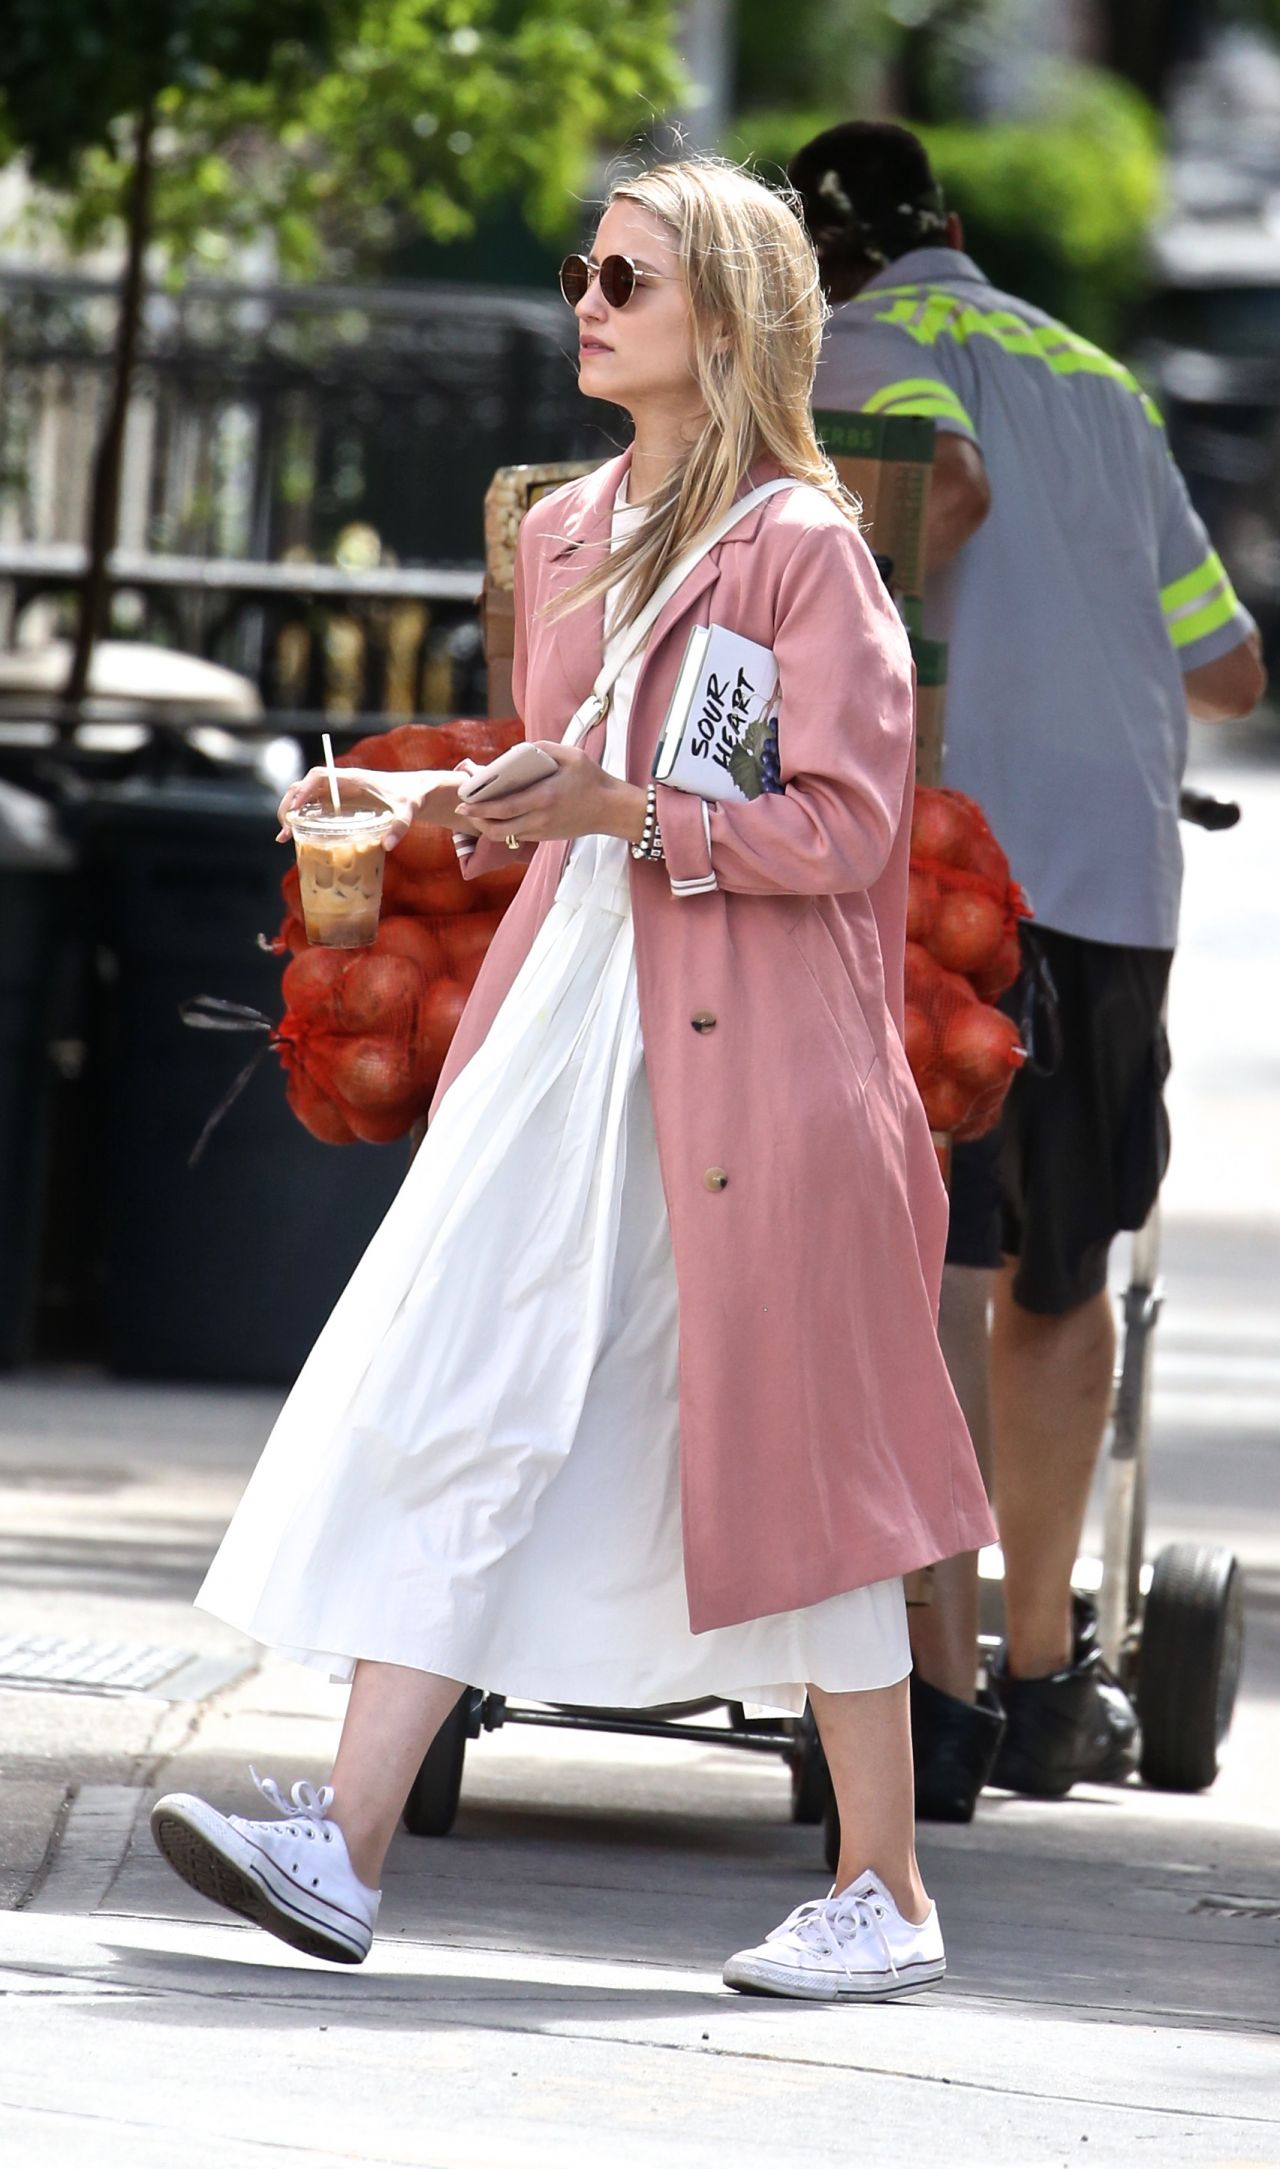 Dianna agron out in new york city new pictures